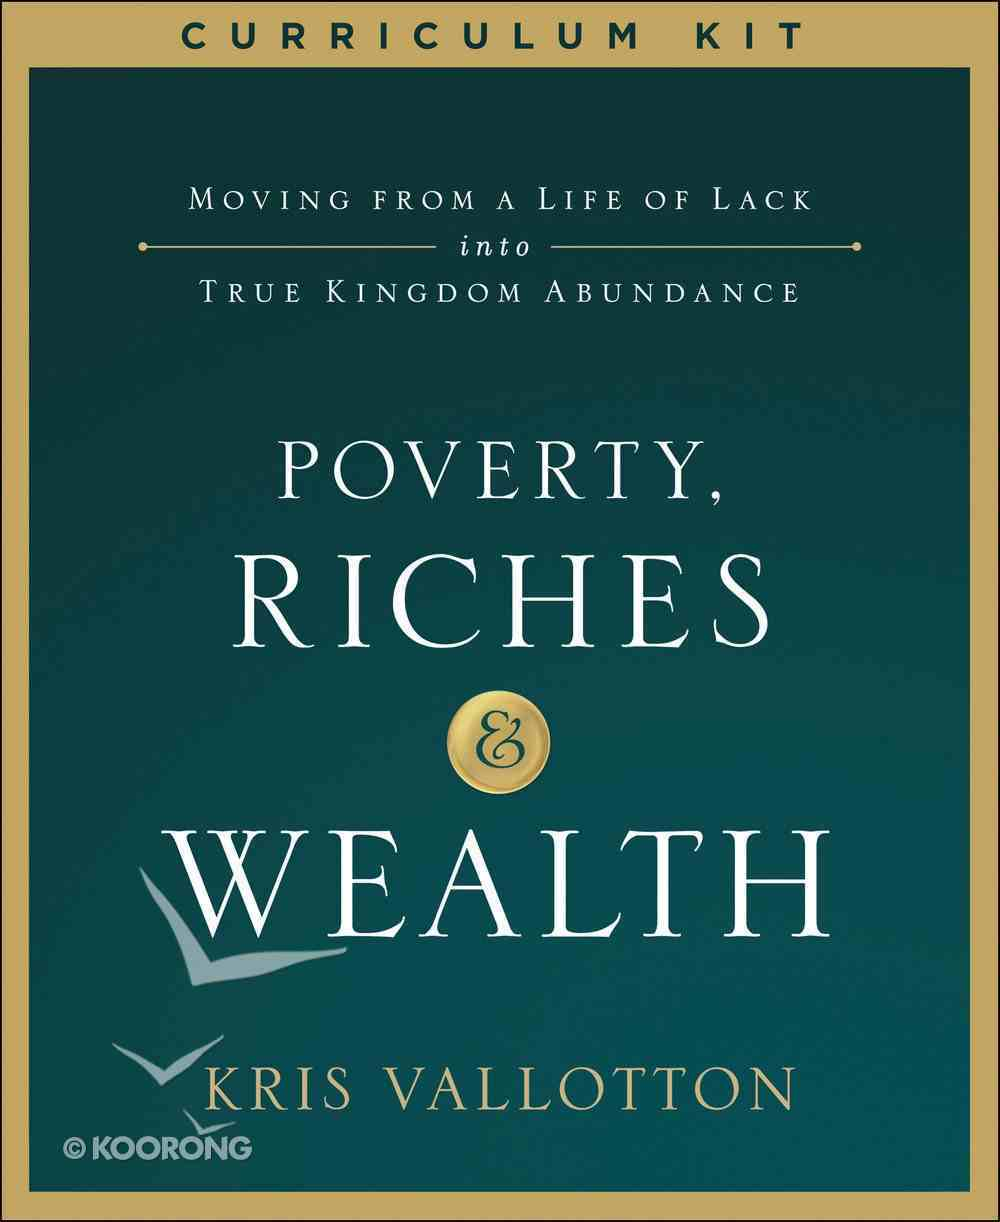 Poverty, Riches and Wealth: Moving From a Life of Lack Into True Kingdom Abundance (Curriculum Kit) Pack